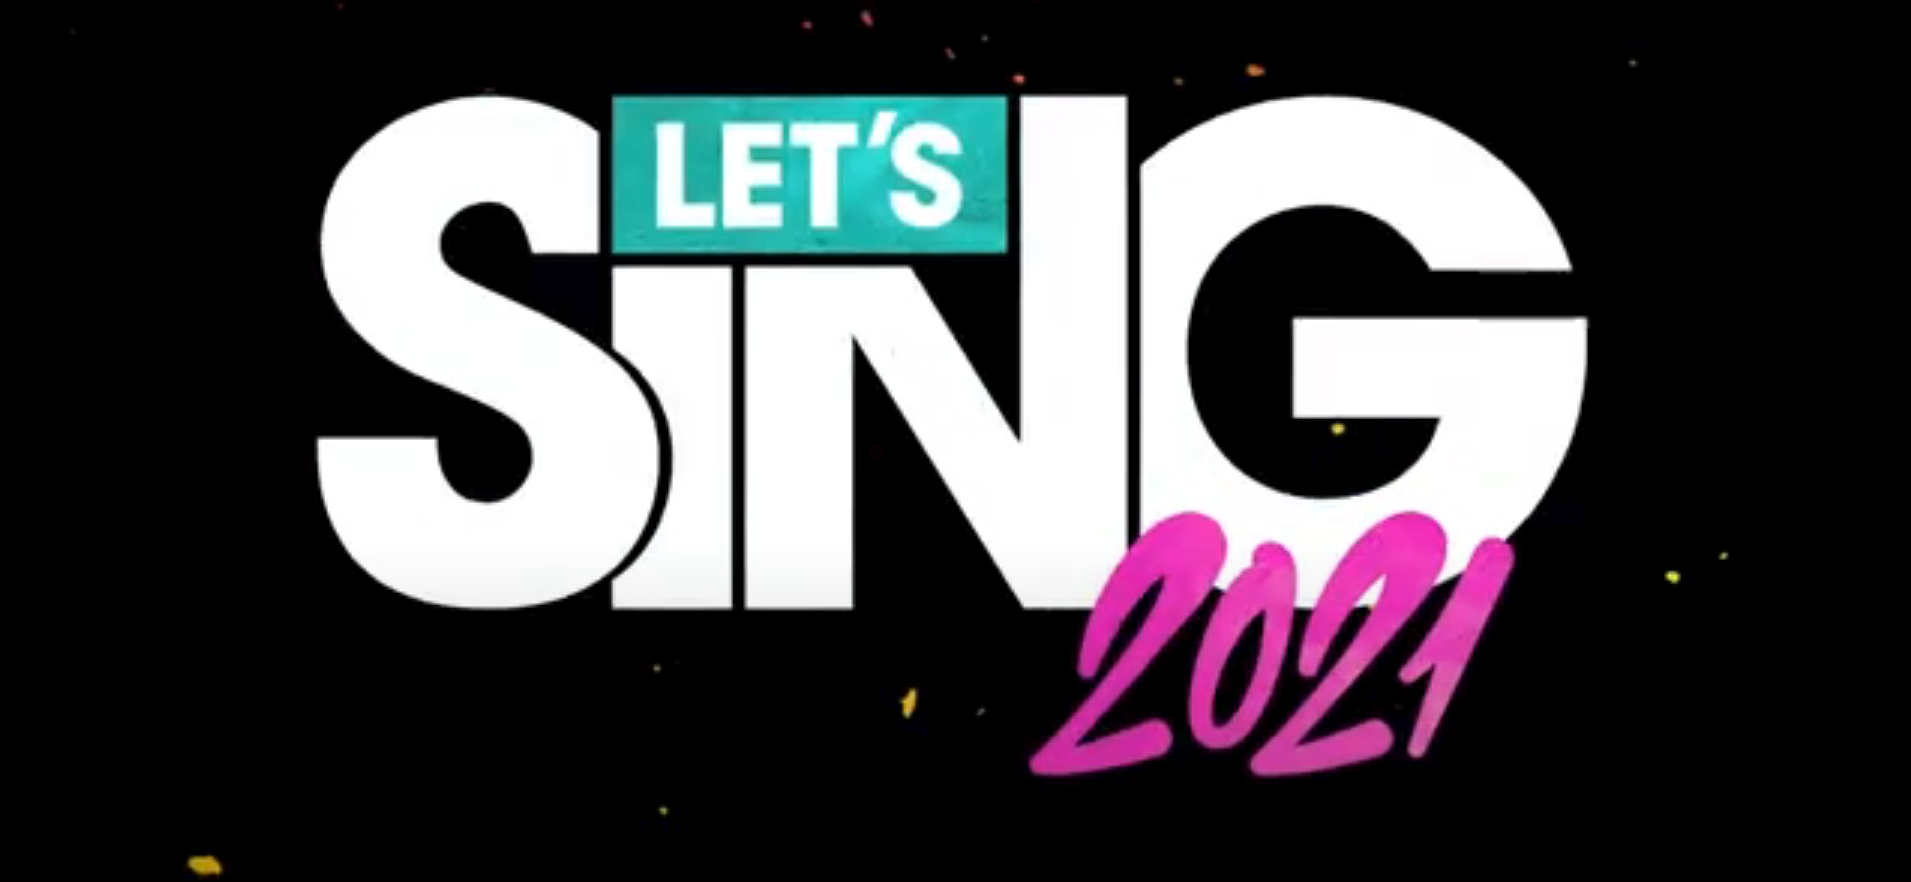 Let's Sing 2021 Karaoke Game Launches This November For Consoles